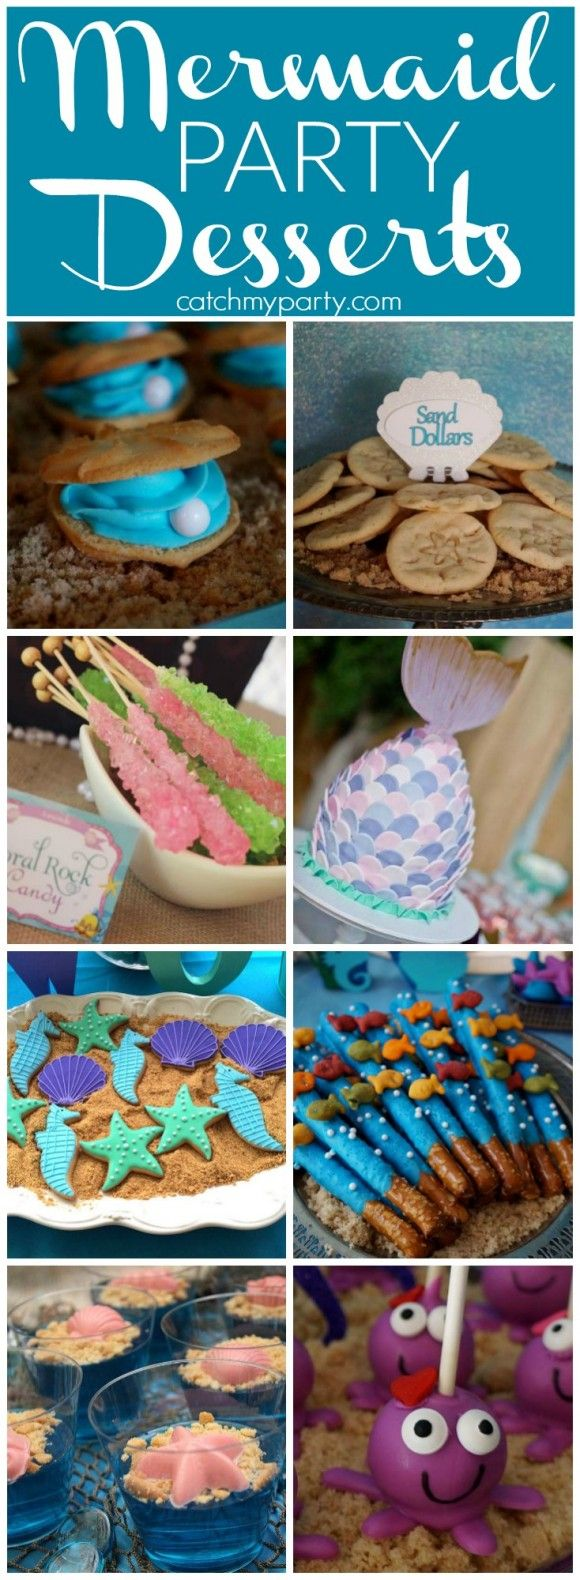 Mermaid Party Desserts to give you ideas for your mermaid and under the sea birthday parties! | CatchMyParty.com